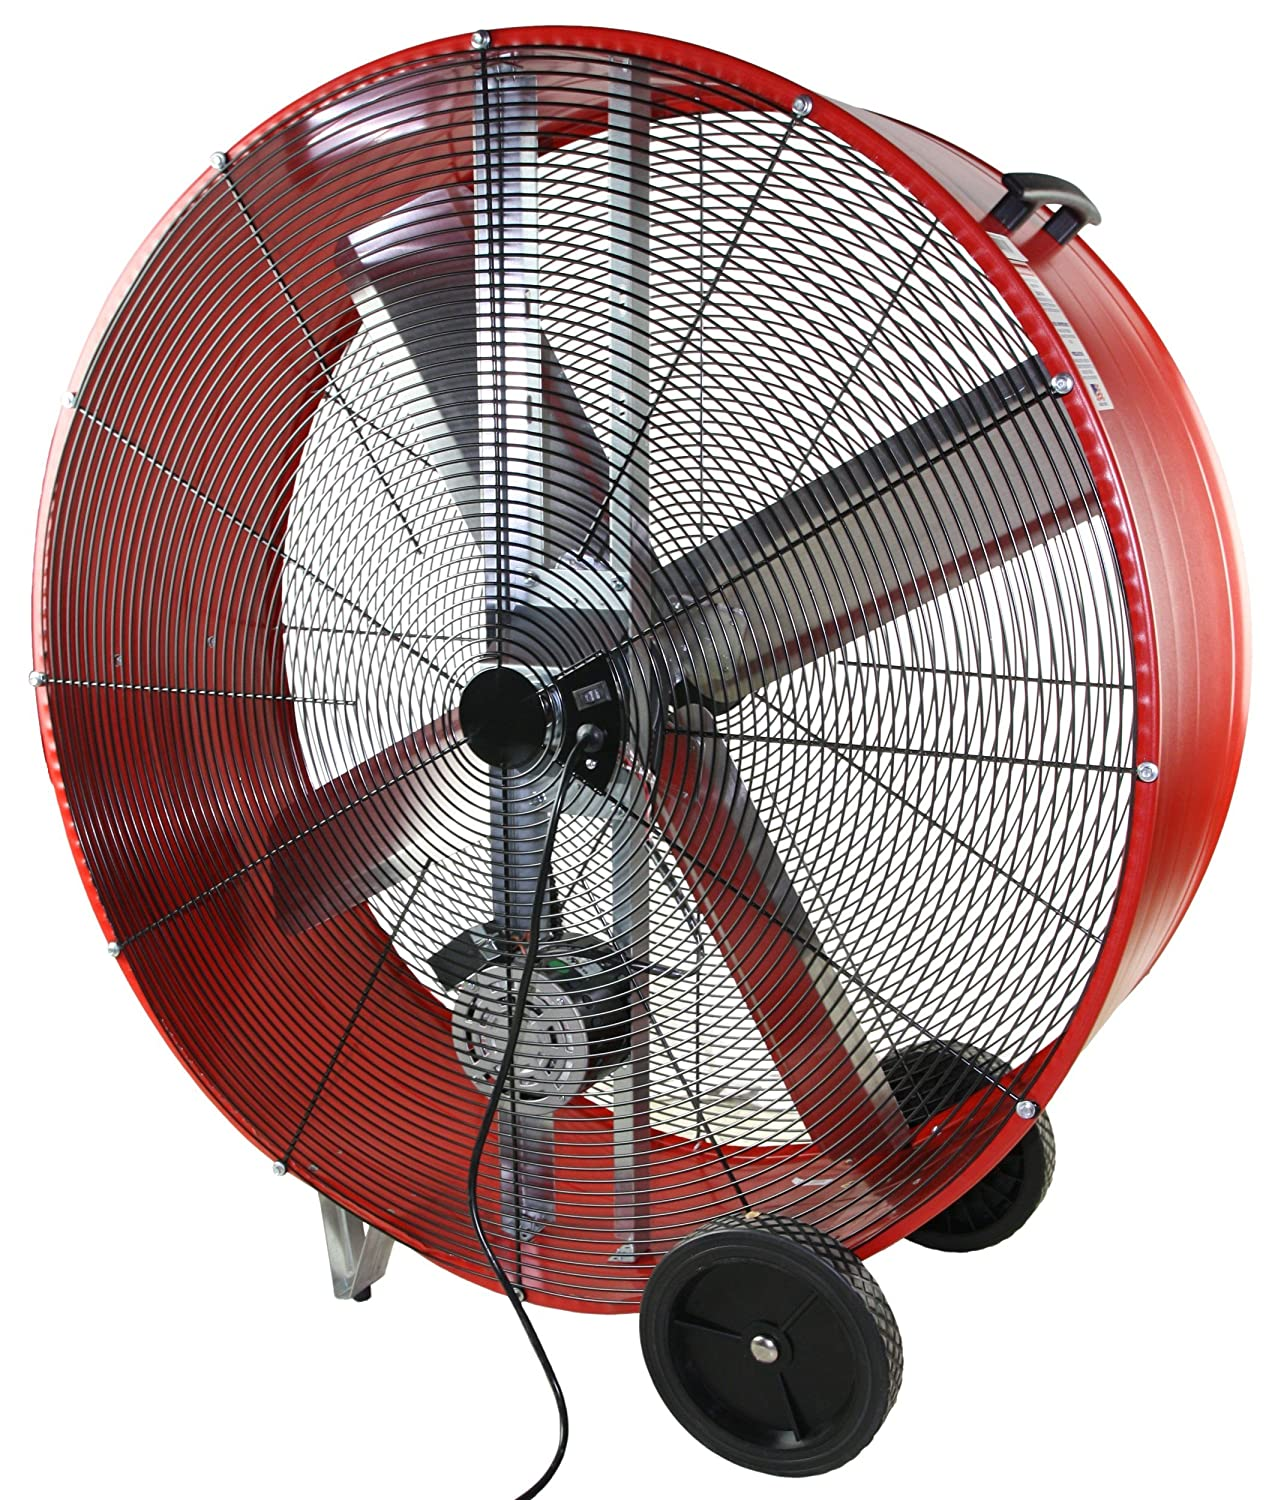 MaxxAir BF42BD High Velocity 2-Speed Belt Drive Drum Fan, Heavy Duty  Potable Barrel Fan, 42-Inches, 13300 CFM, Red - Bathroom Fans - Amazon.com